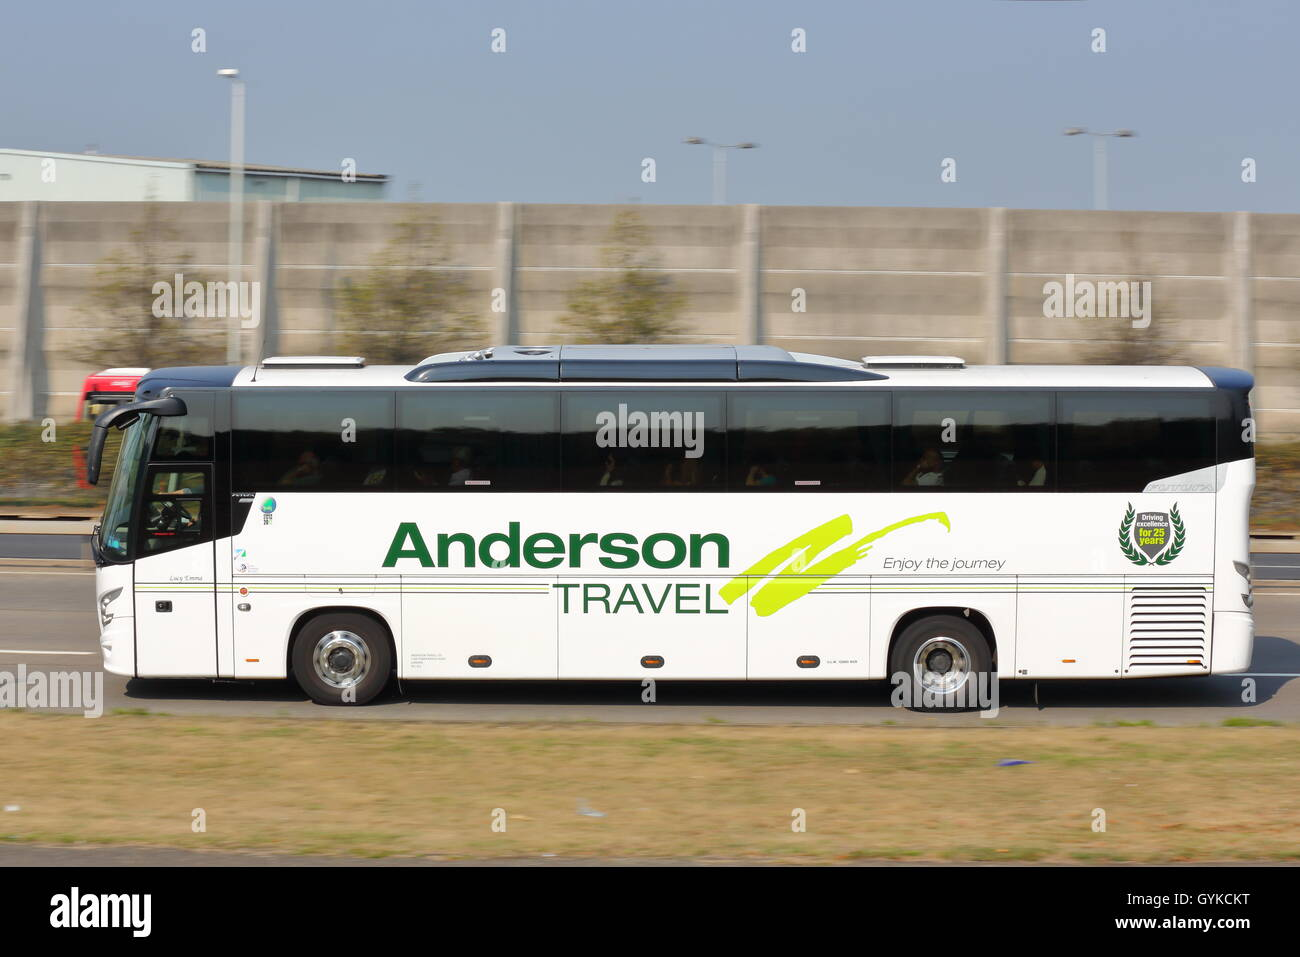 Anderson Travel coach near Heathrow Airport - Stock Image